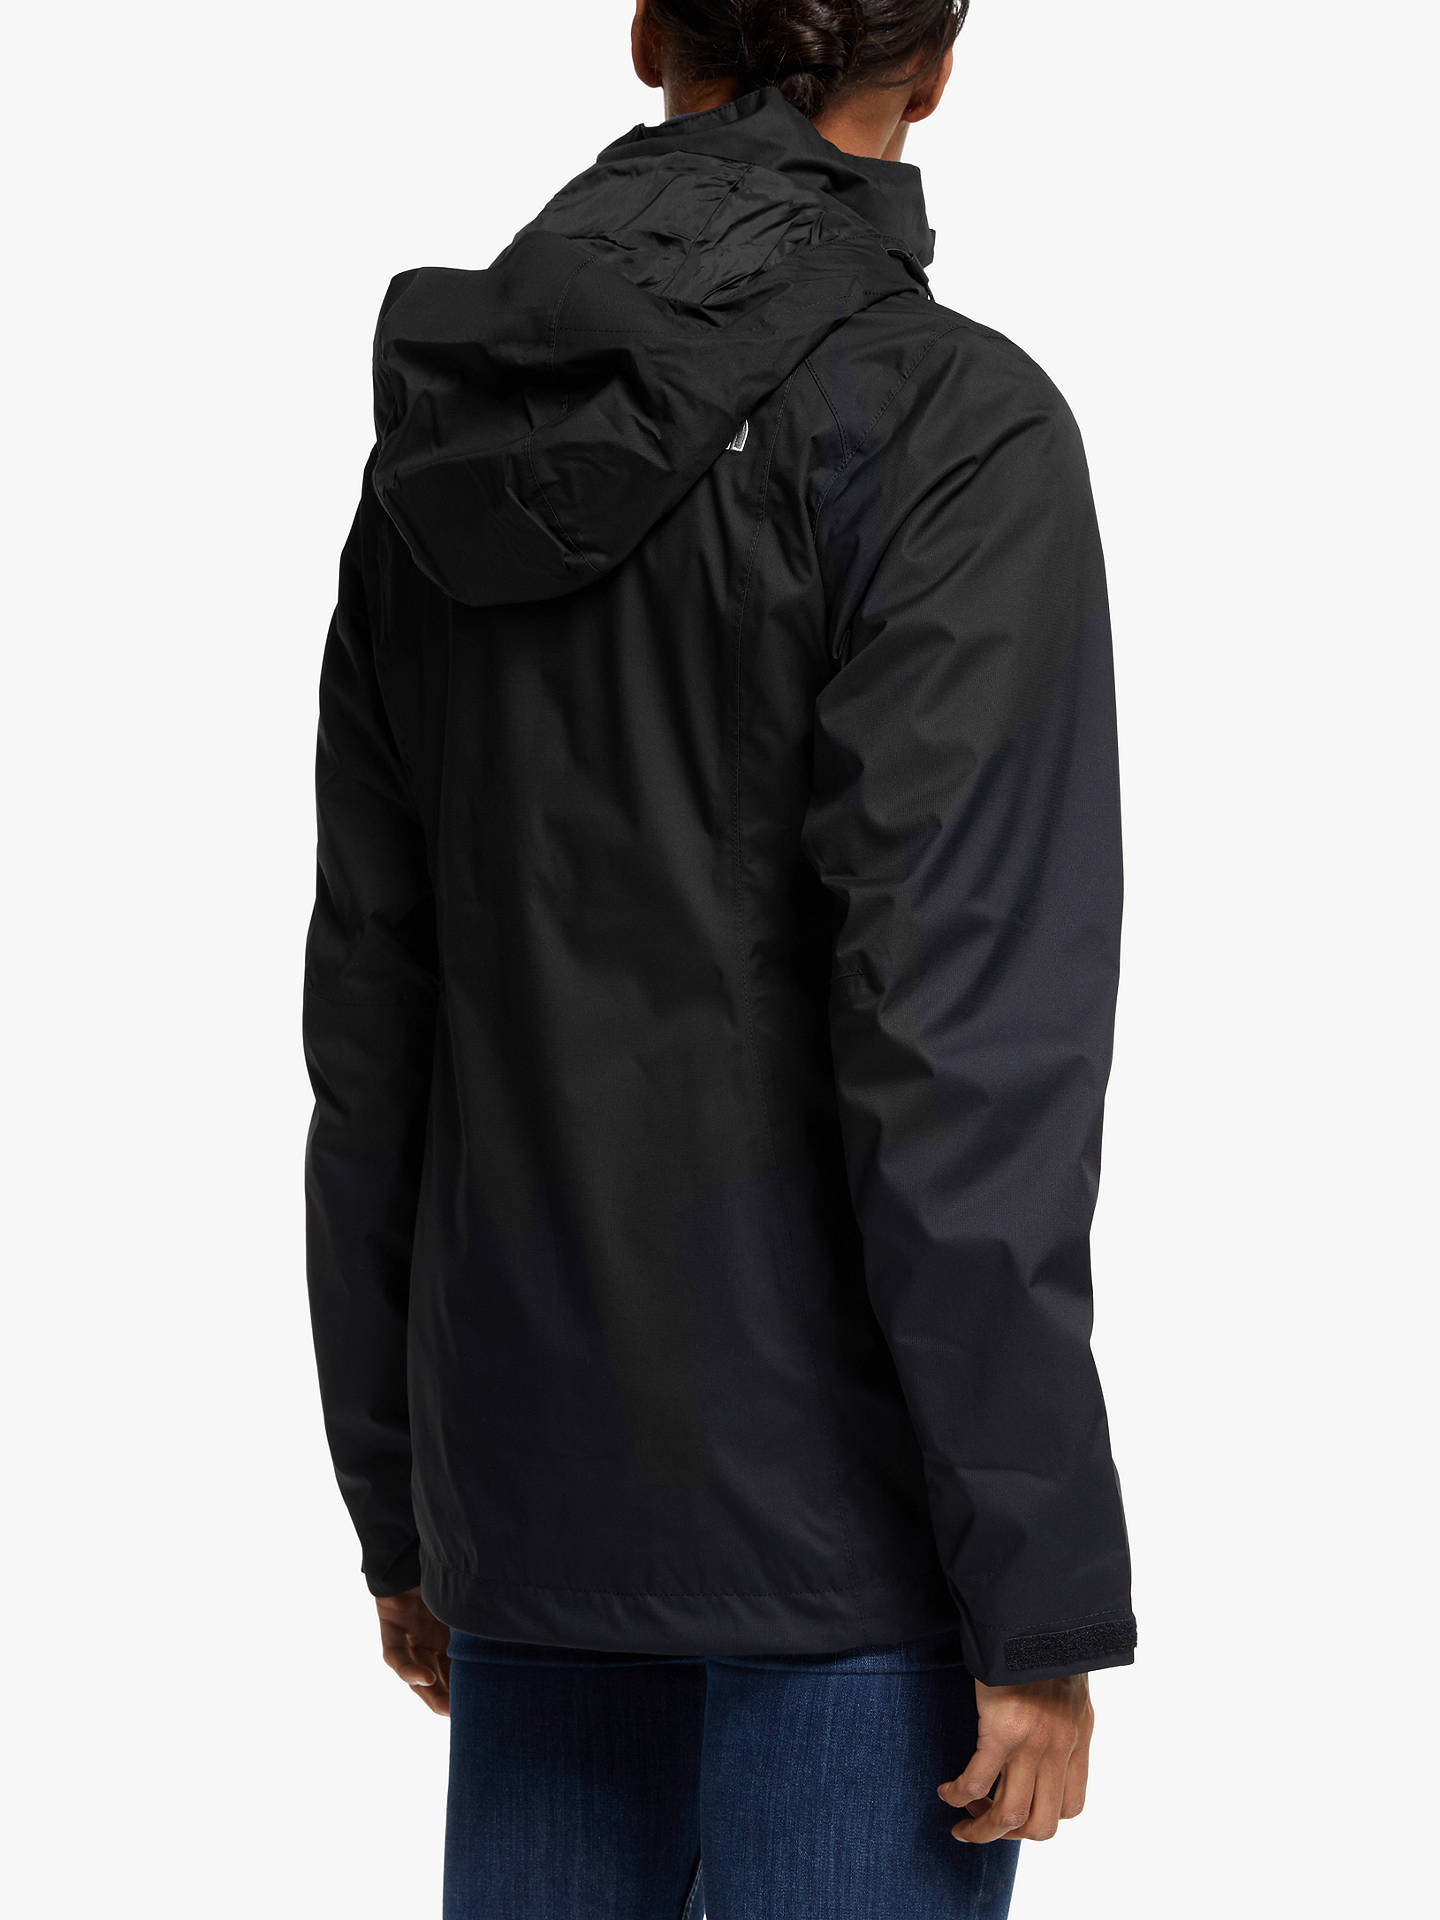 936fe5801e The North Face Evolve II Triclimate 3-in-1 Waterproof Women's Jacket, Black